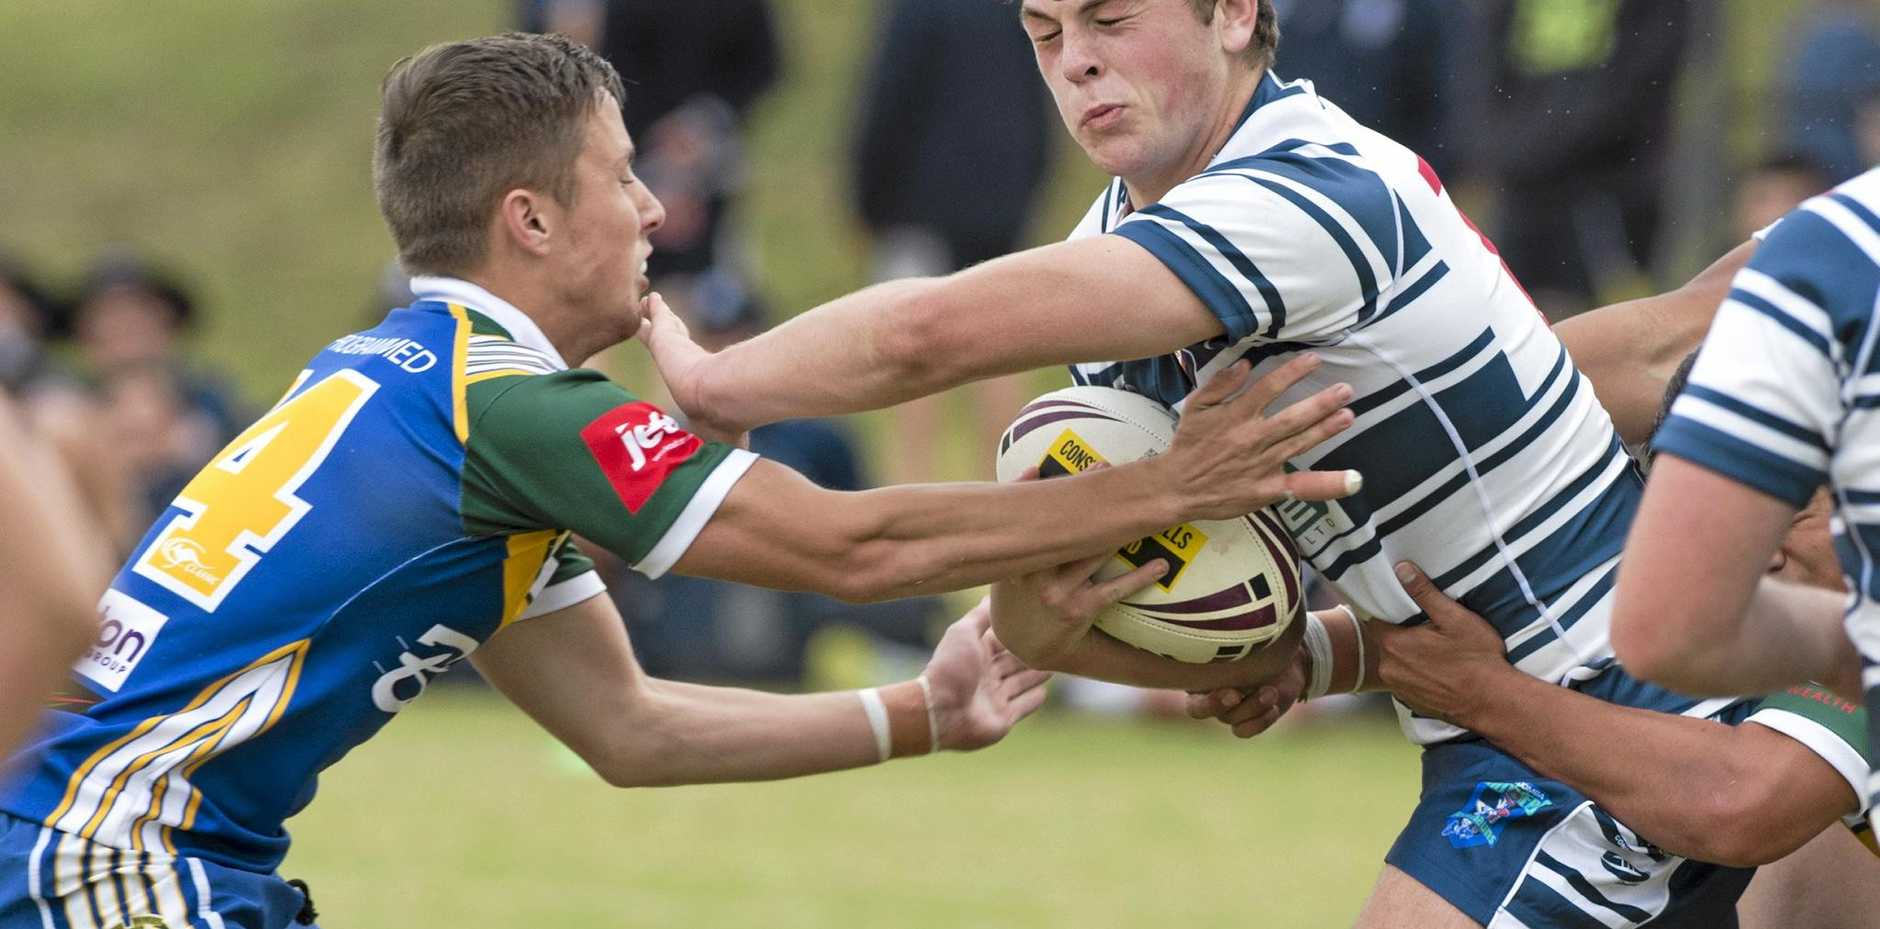 HIT UP: Mitch Revell (right) plays for St Mary's College.